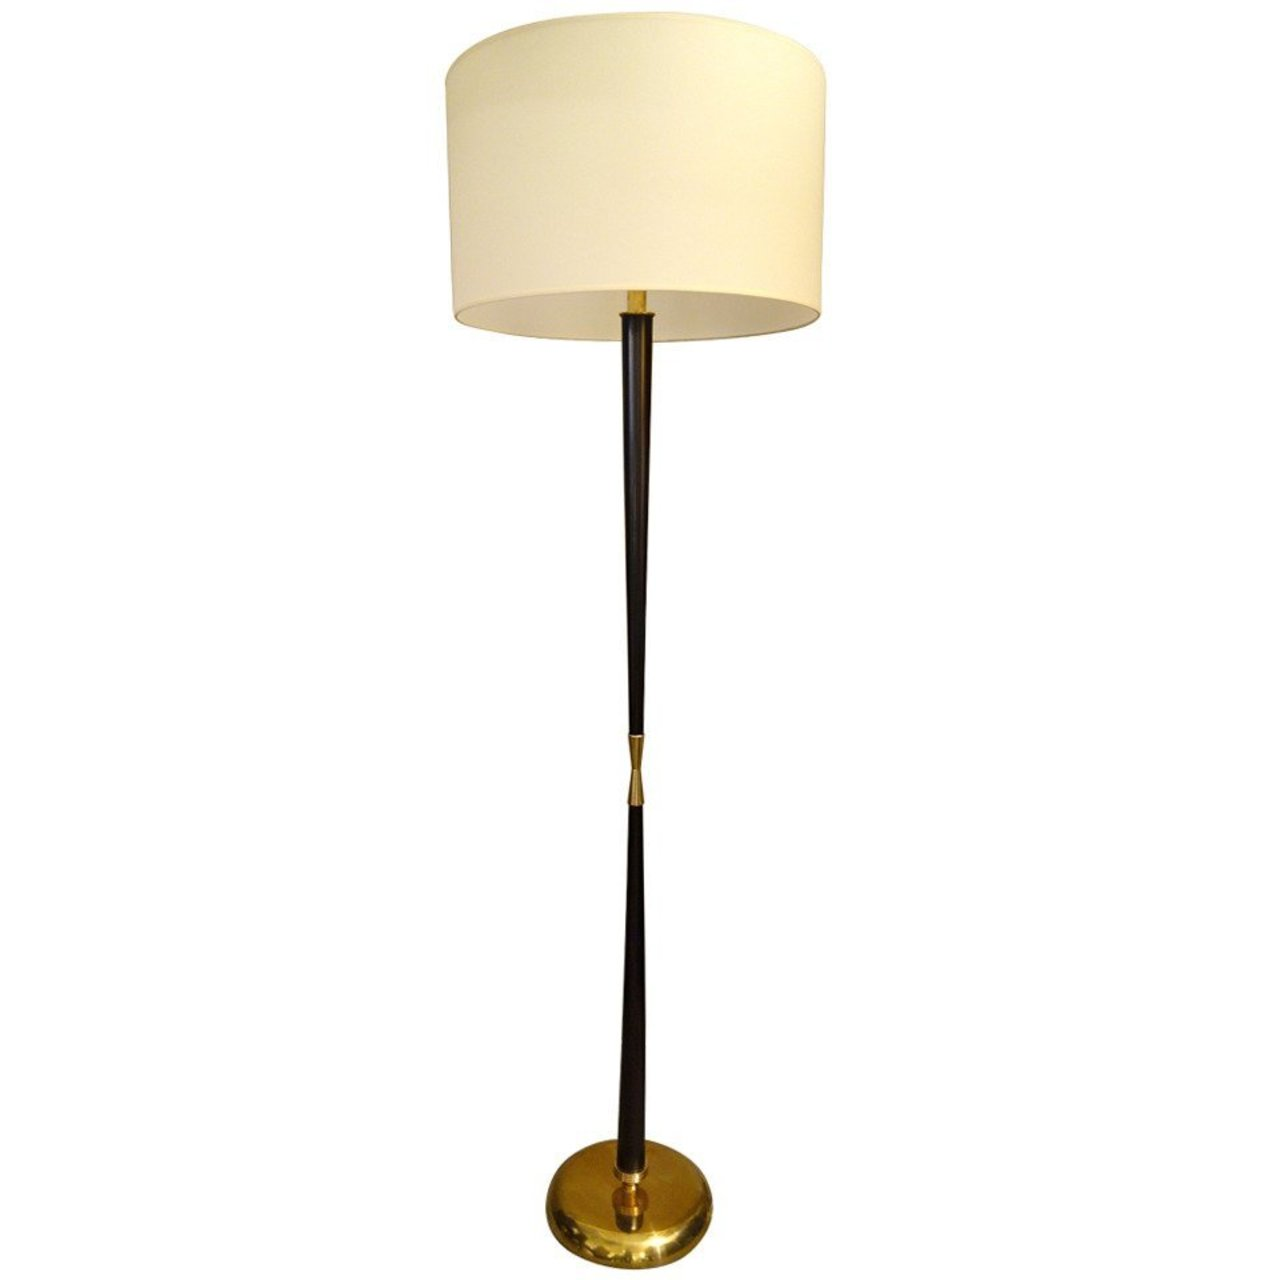 Italian mid century modern stilnovo wood and brass floor Wood floor lamp